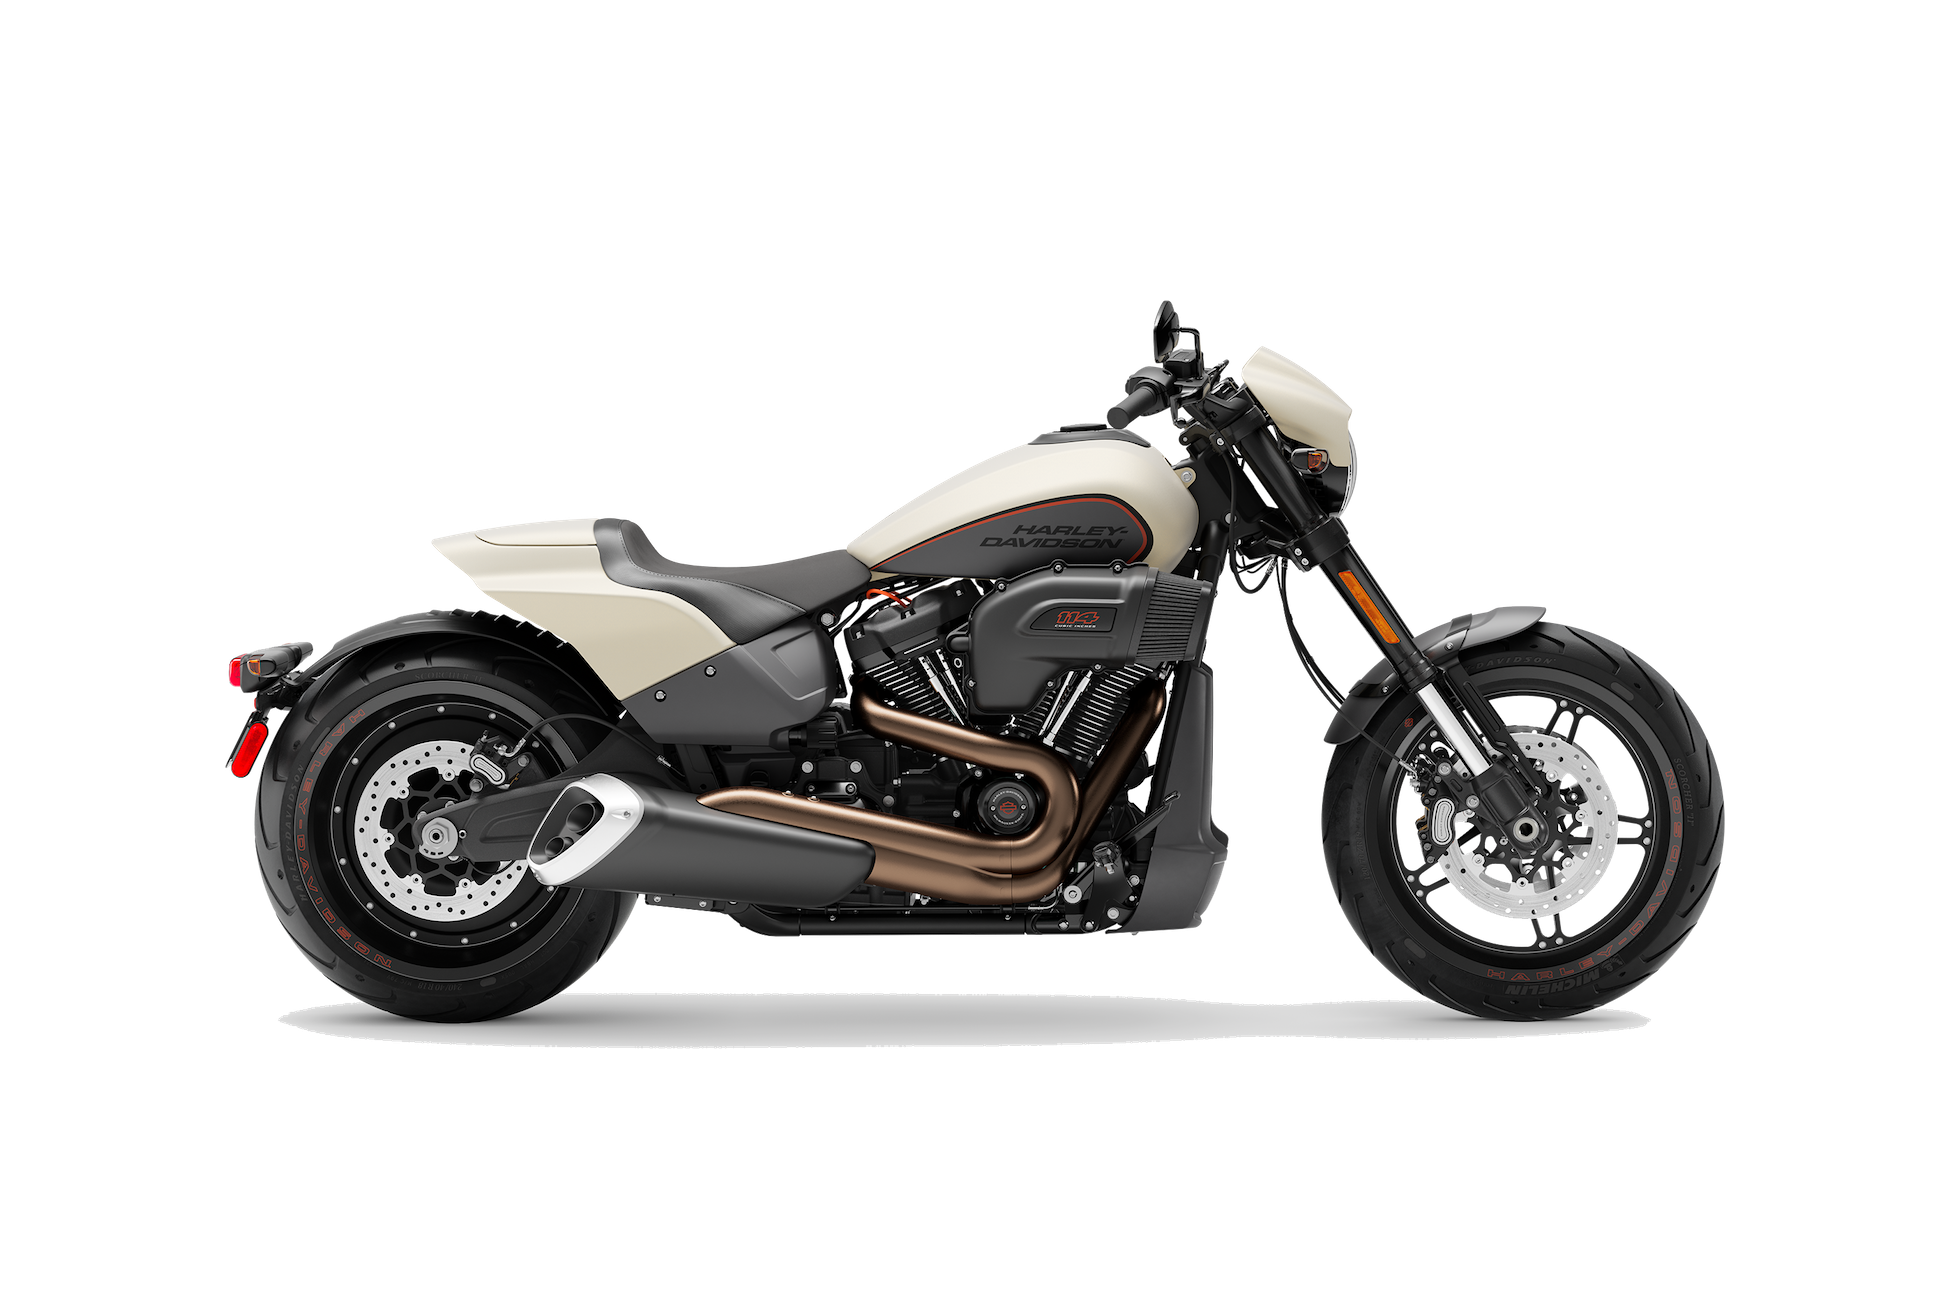 2019 H-D® FXDR™ 114 in Bonneville Salt Denim